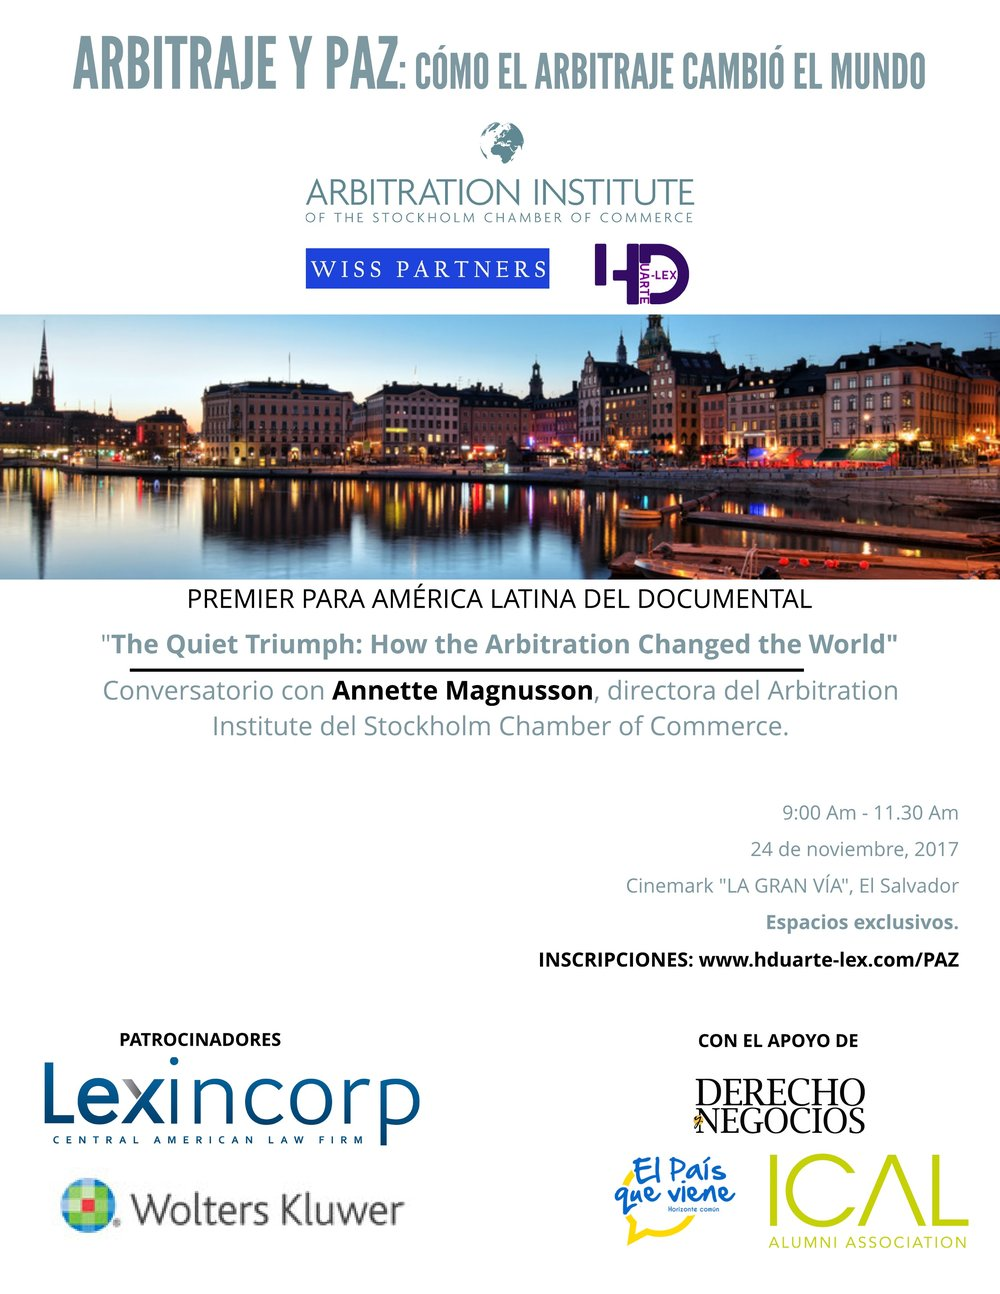 Arbitration for peace - Hduarte Lex - Manuela de la Helguera- Herman Duarte- Wiss Partners - Stockholm Chamber of Commerce